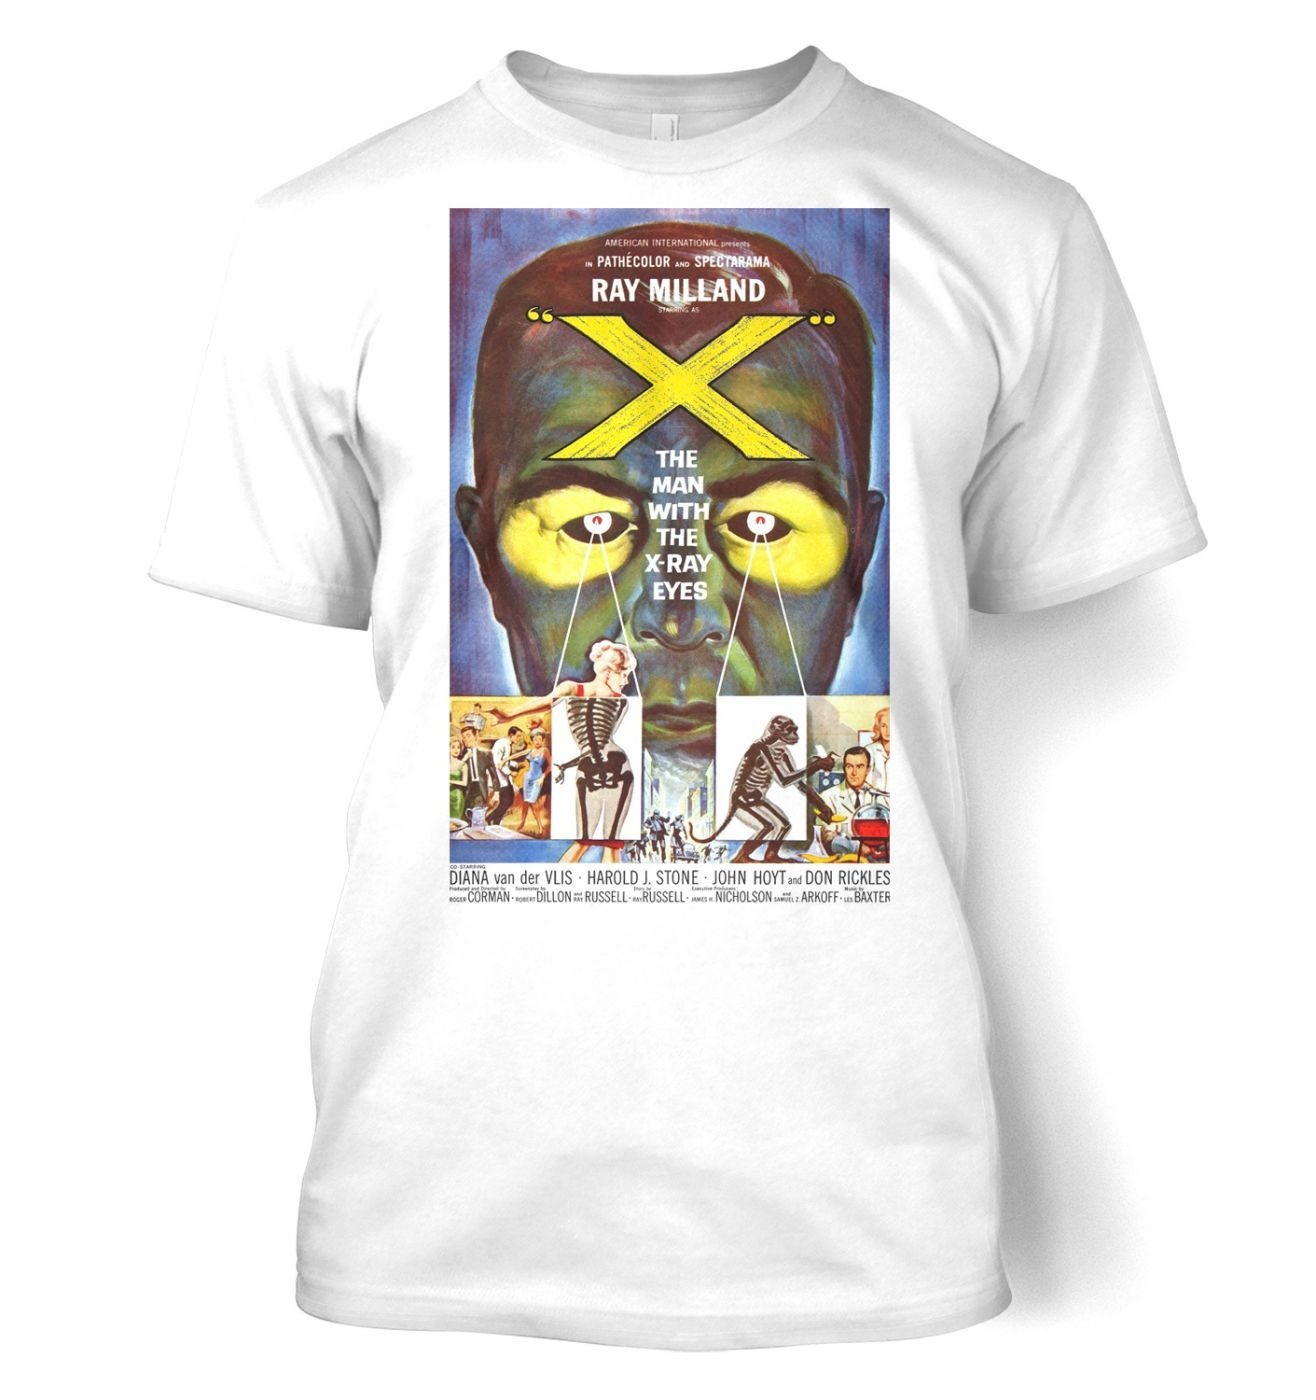 The Man With X-Ray Eyes men's t-shirt